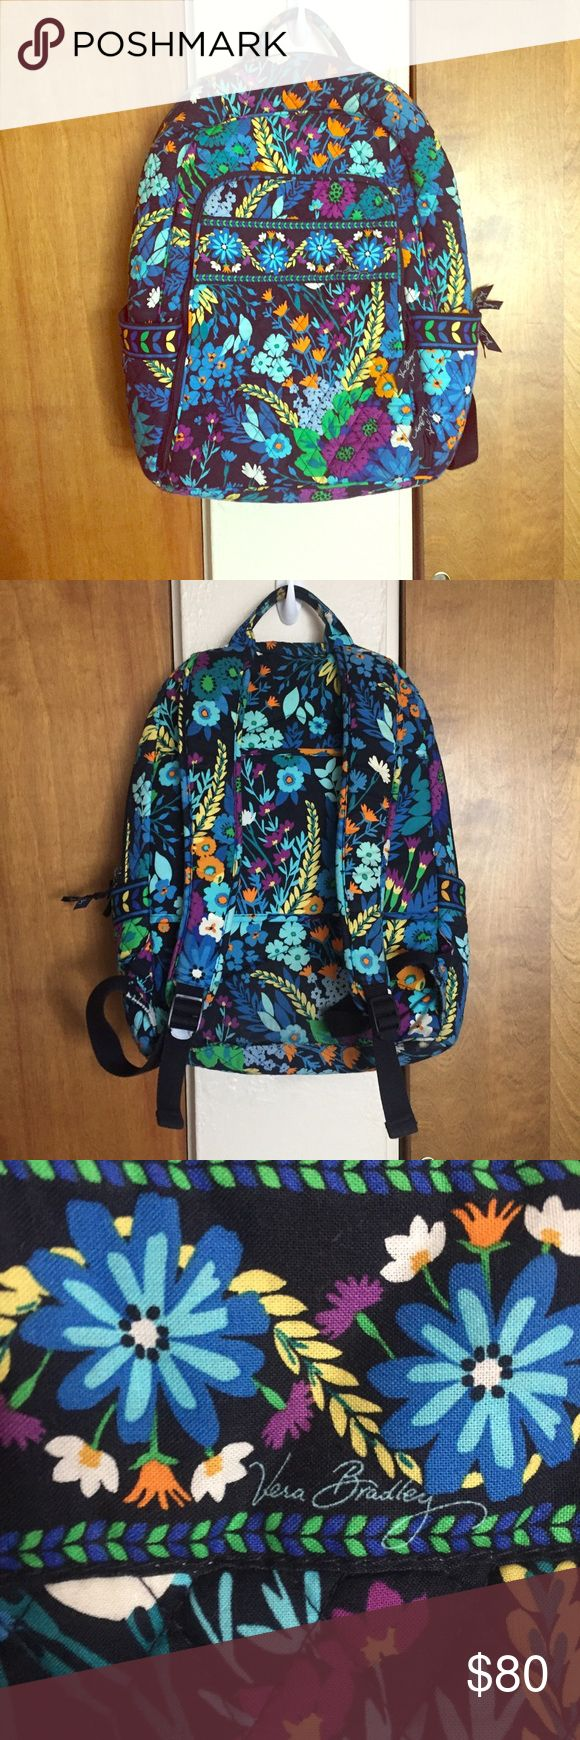 Vera Bradley blue floral extra large backpack Extra large perfect Vera Bradley electric blue floral backpack! So many pockets, large pockets, suitcase bar, side pockets. For the hippie gypsy hiker free people urban outfitters Mary Kay Michael kors coach nasty gal festival gypsy dolls kill unif Betsy Johnson novella royale liberated heart Arnhem Vera Bradley Bags Backpacks